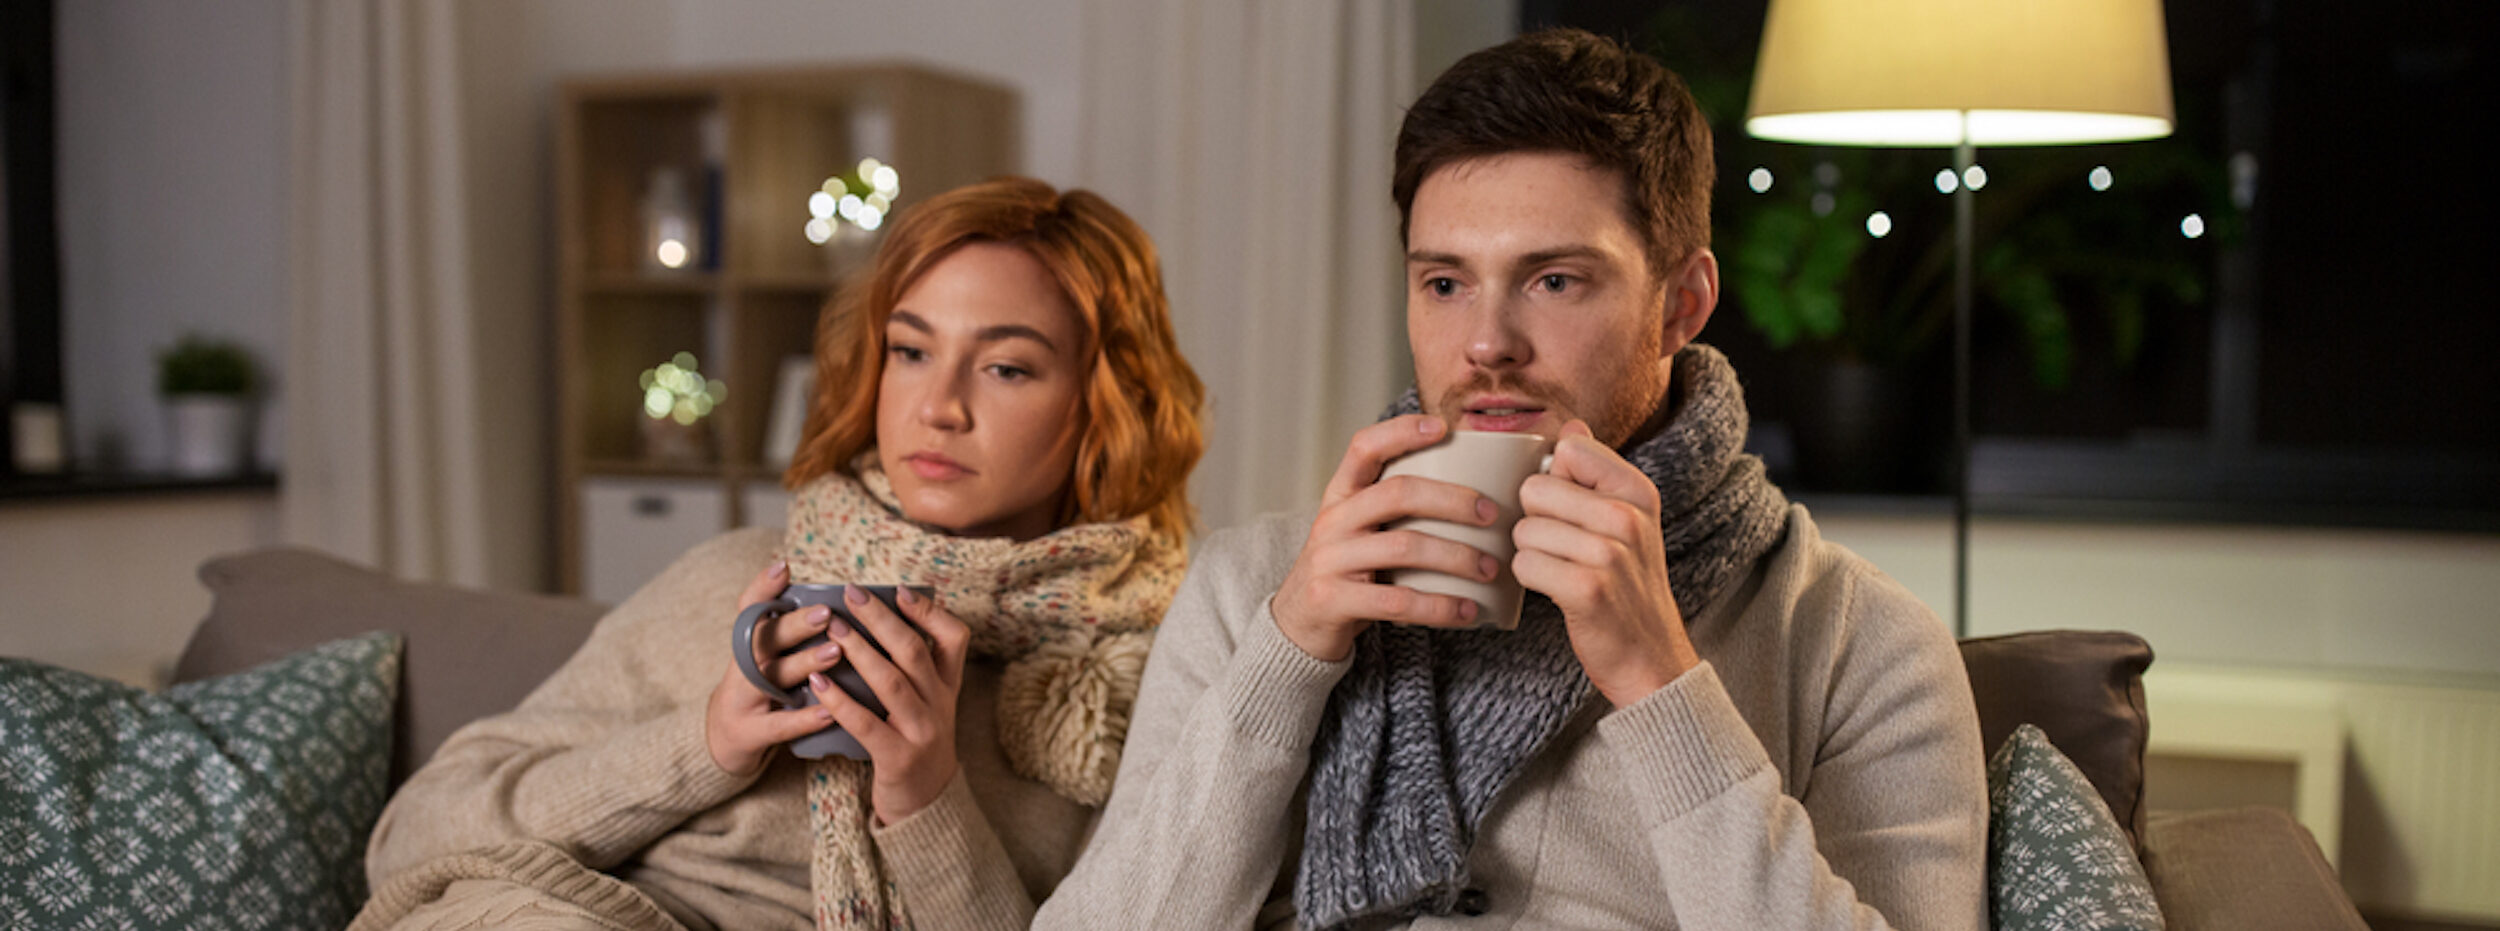 A Couple Sitting On A Couch, Under Blankets, Sipping A Hot Drink